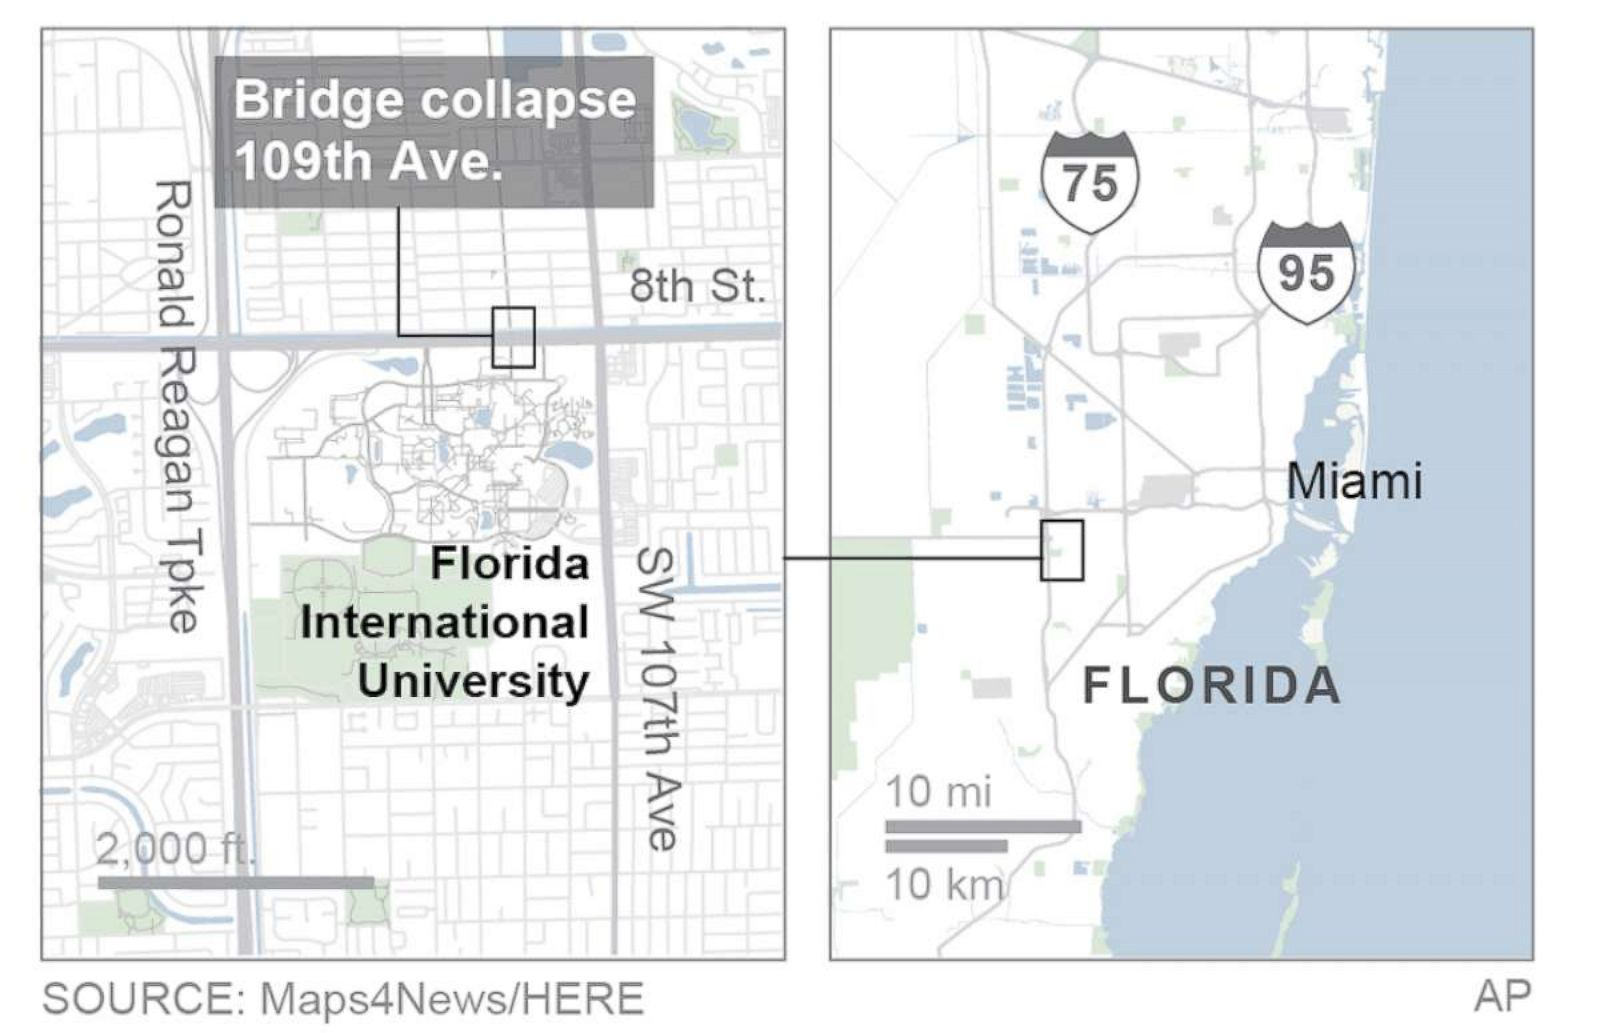 FIU bridge collapse: At least 4 killed after pedestrian ... on bucknell google maps, texas google maps, new mexico google maps, columbia google maps, xavier google maps, utah google maps, north carolina google maps, wyoming google maps, utsa google maps, clemson google maps, florida google maps, delaware google maps, mississippi google maps, south carolina google maps, duke google maps, smu google maps, iowa google maps, villanova google maps, albany google maps, troy google maps,